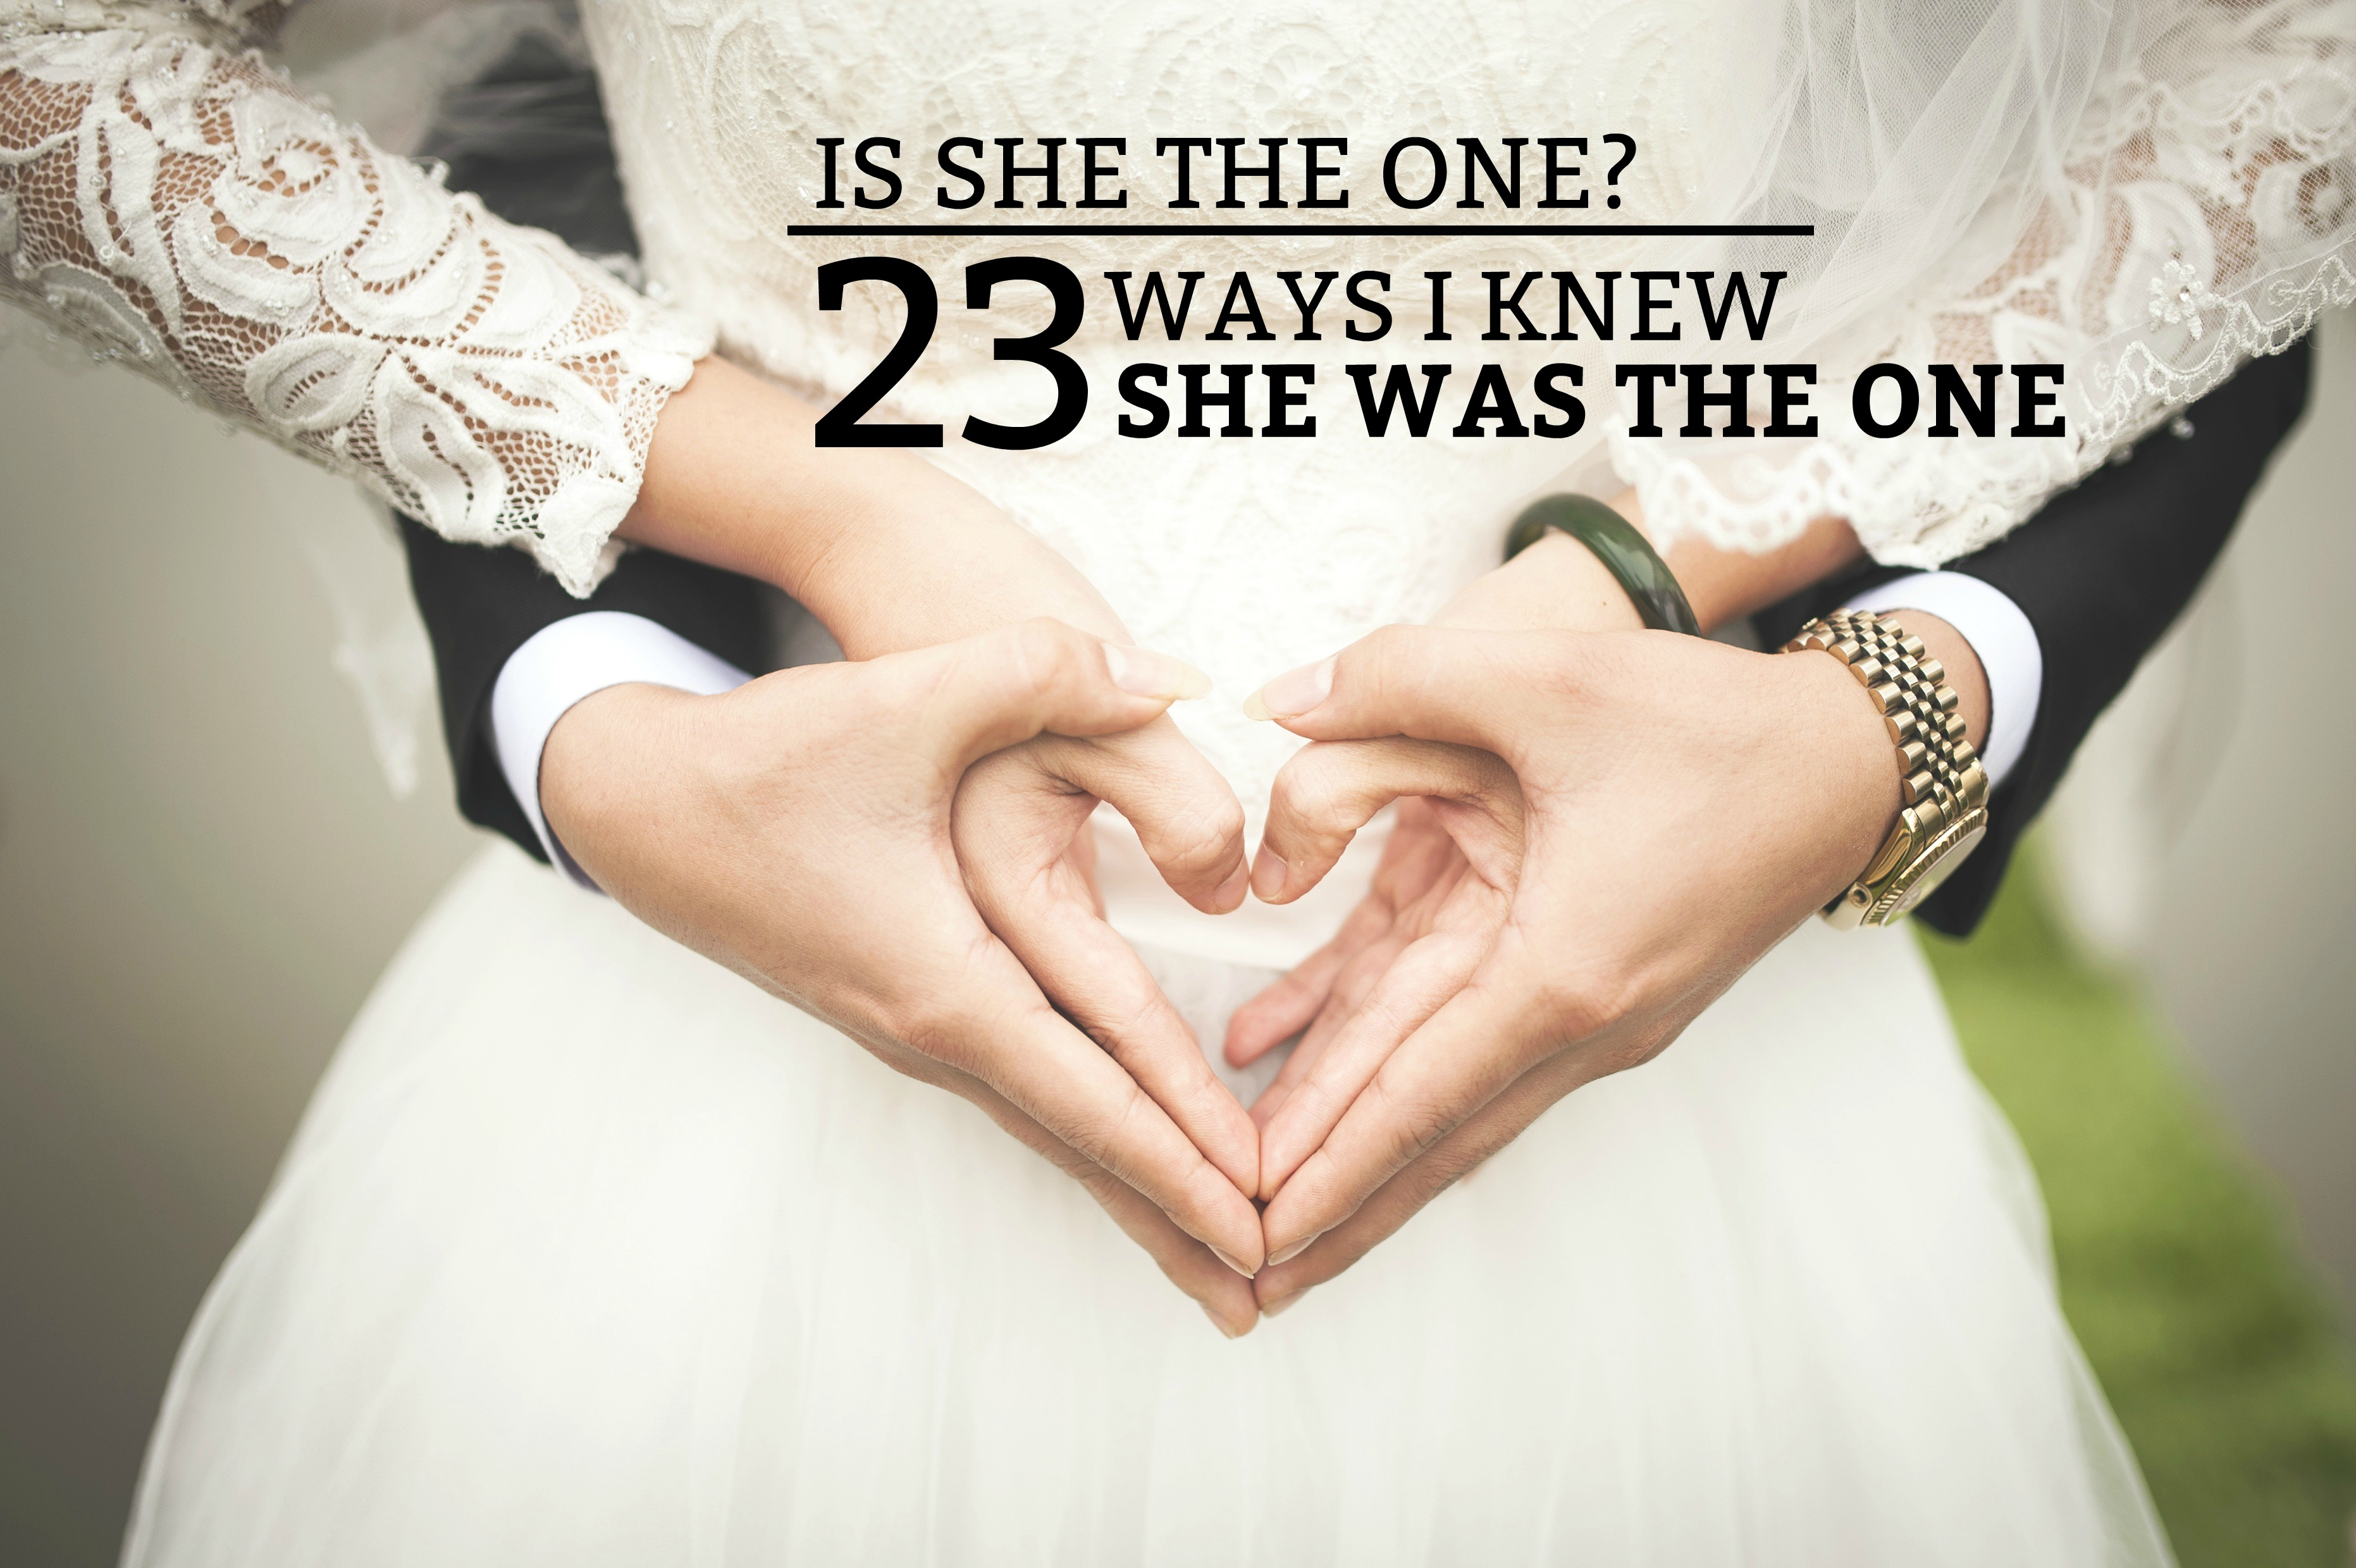 Is She the One? 23 Ways I Knew She Was the One - A guide to how I knew my wife was the woman I would spend the rest of my life with. www.tradingaverage.com